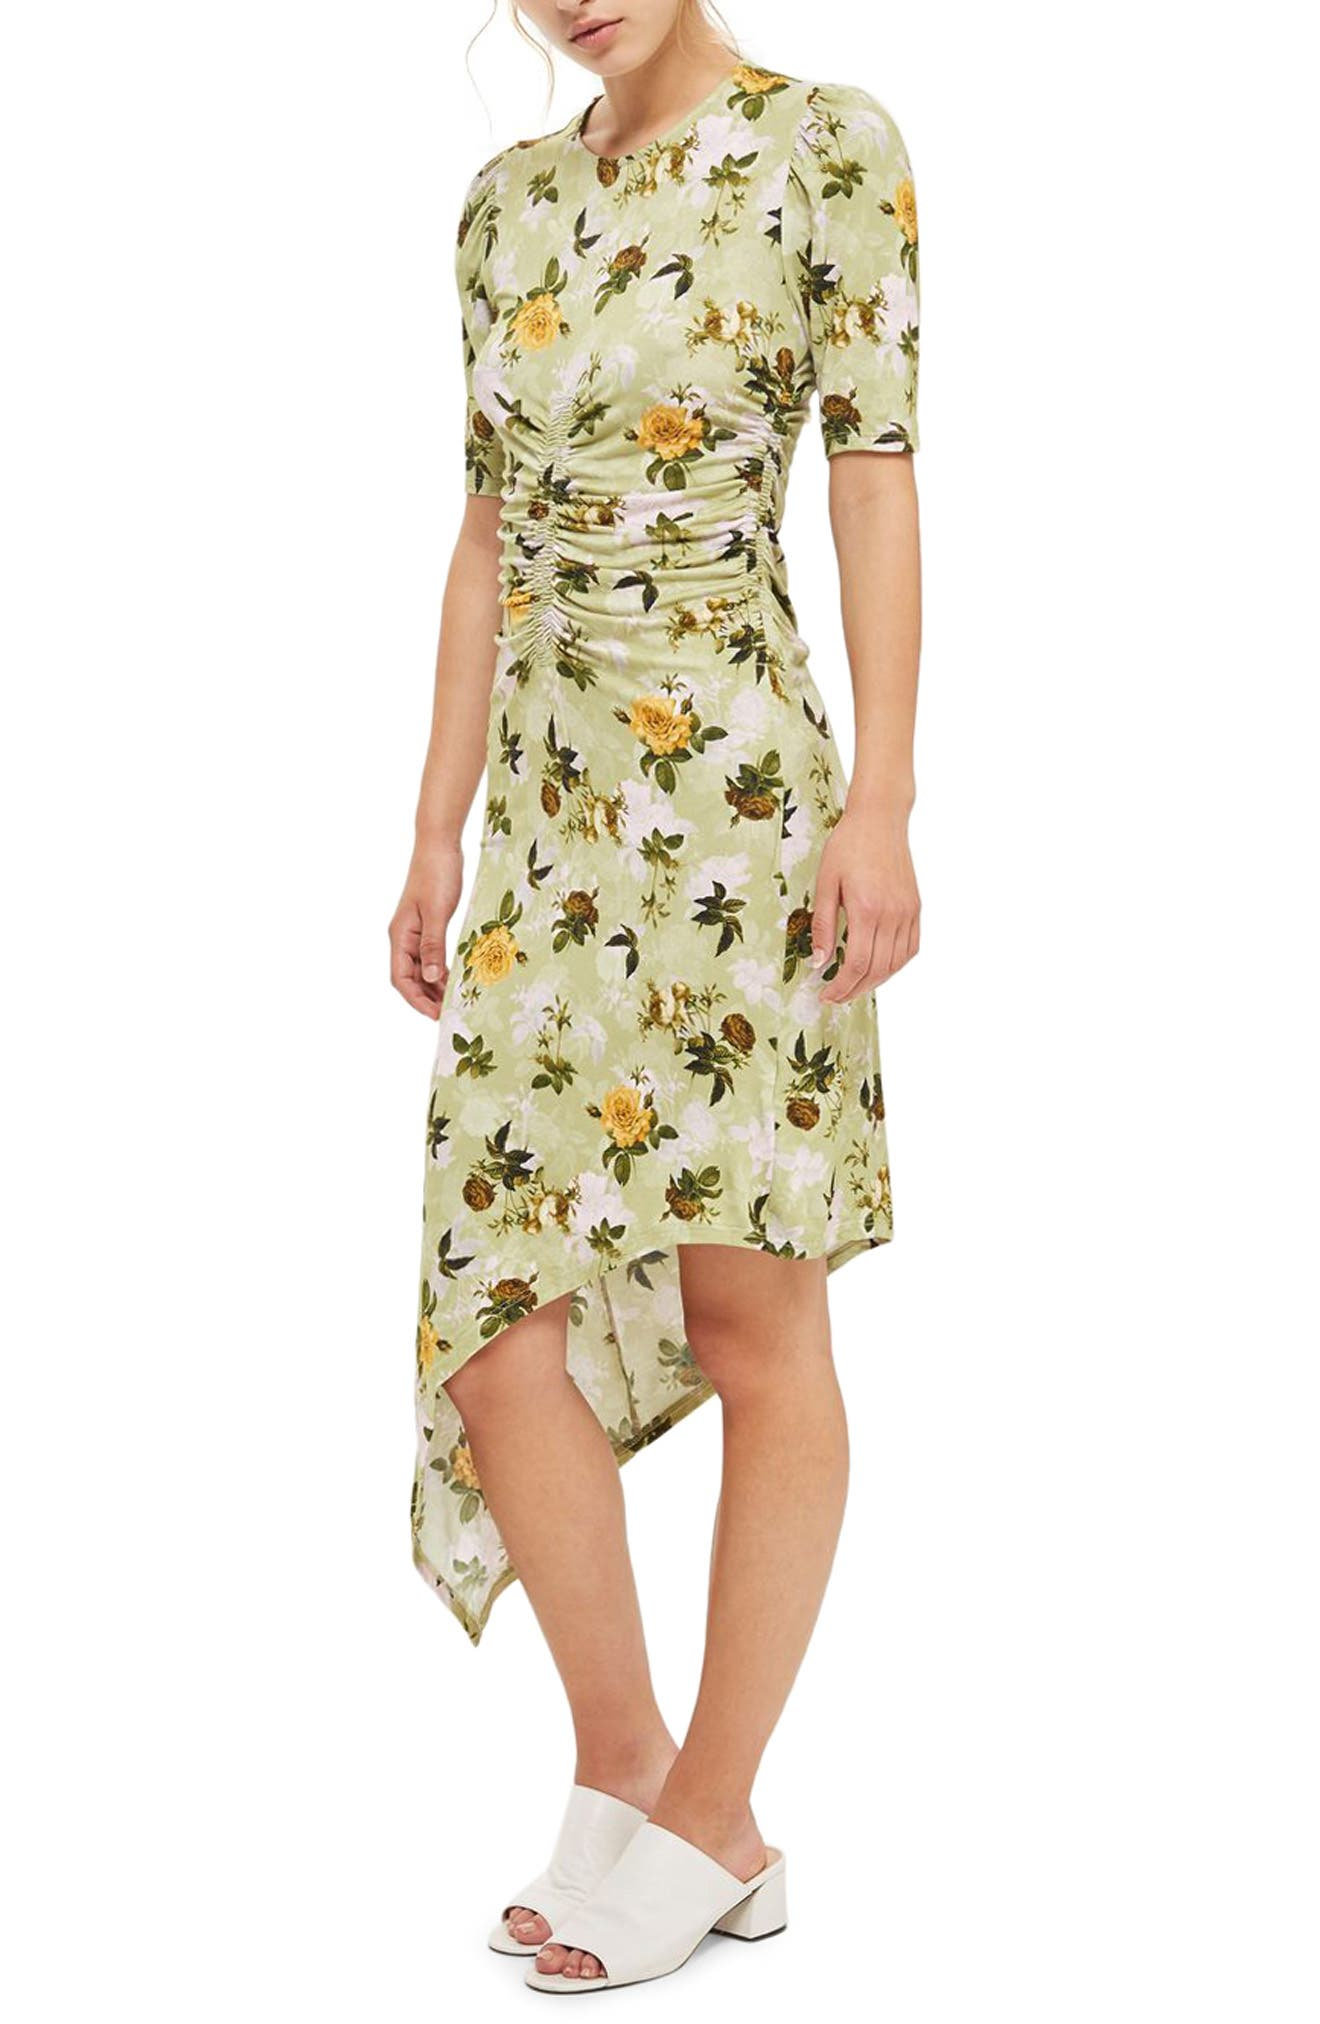 Topshop Floral Ruched Asymmetrical Midi Dress